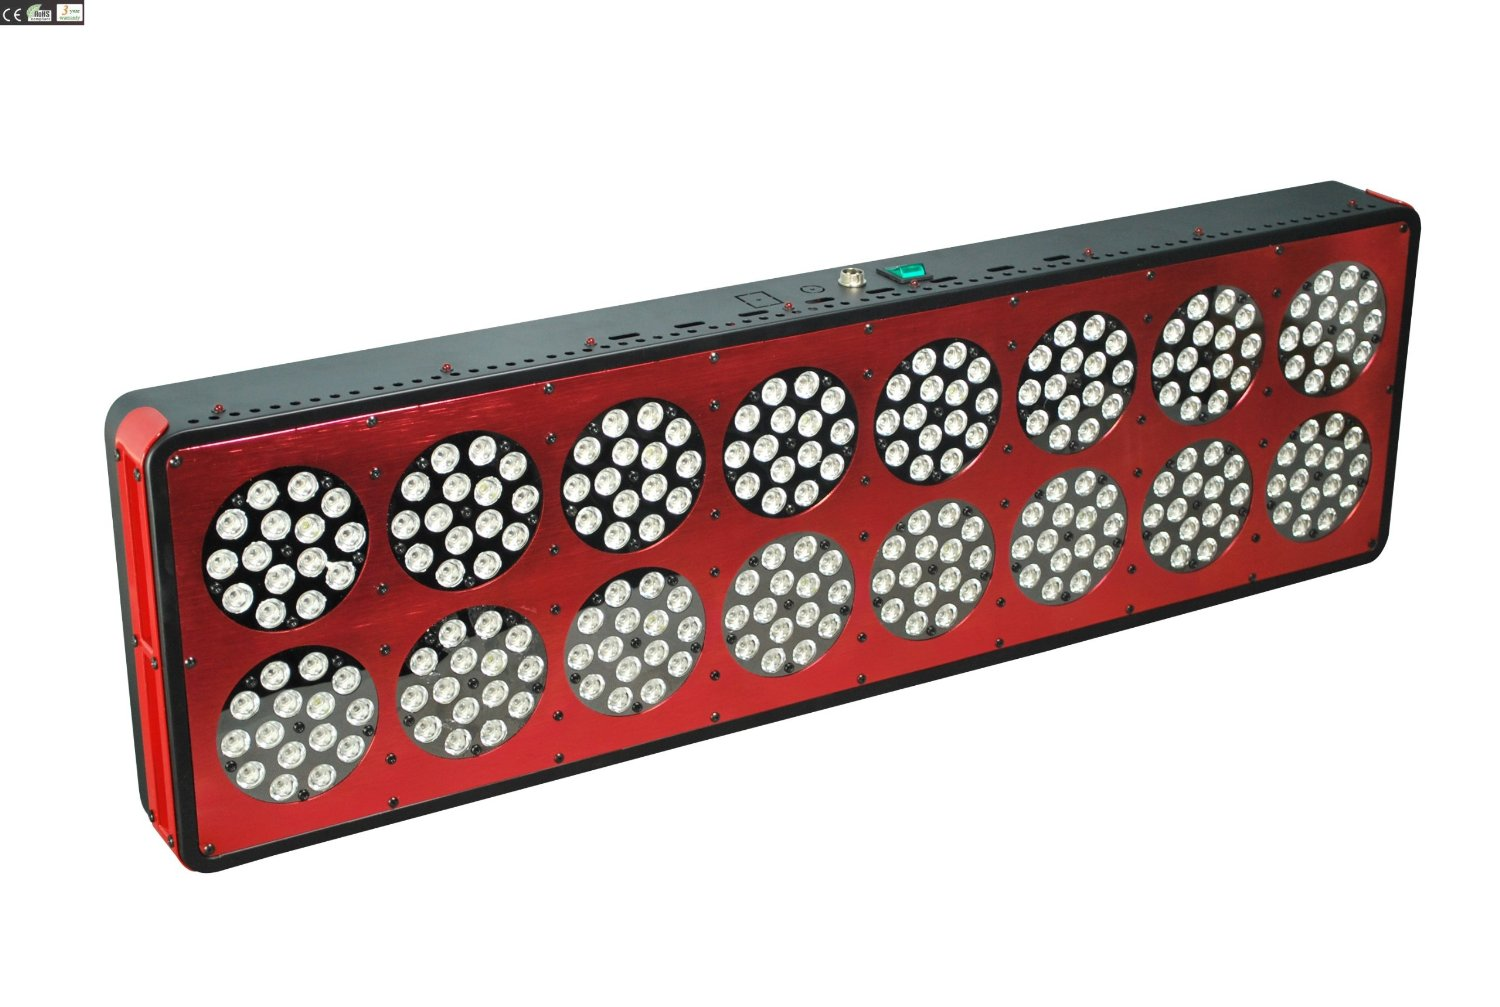 Ditforu new Upgraded Apollo Led Grow Light 720W (240*3W) new genneration non-stop working high quality Hydroponics Plant Light